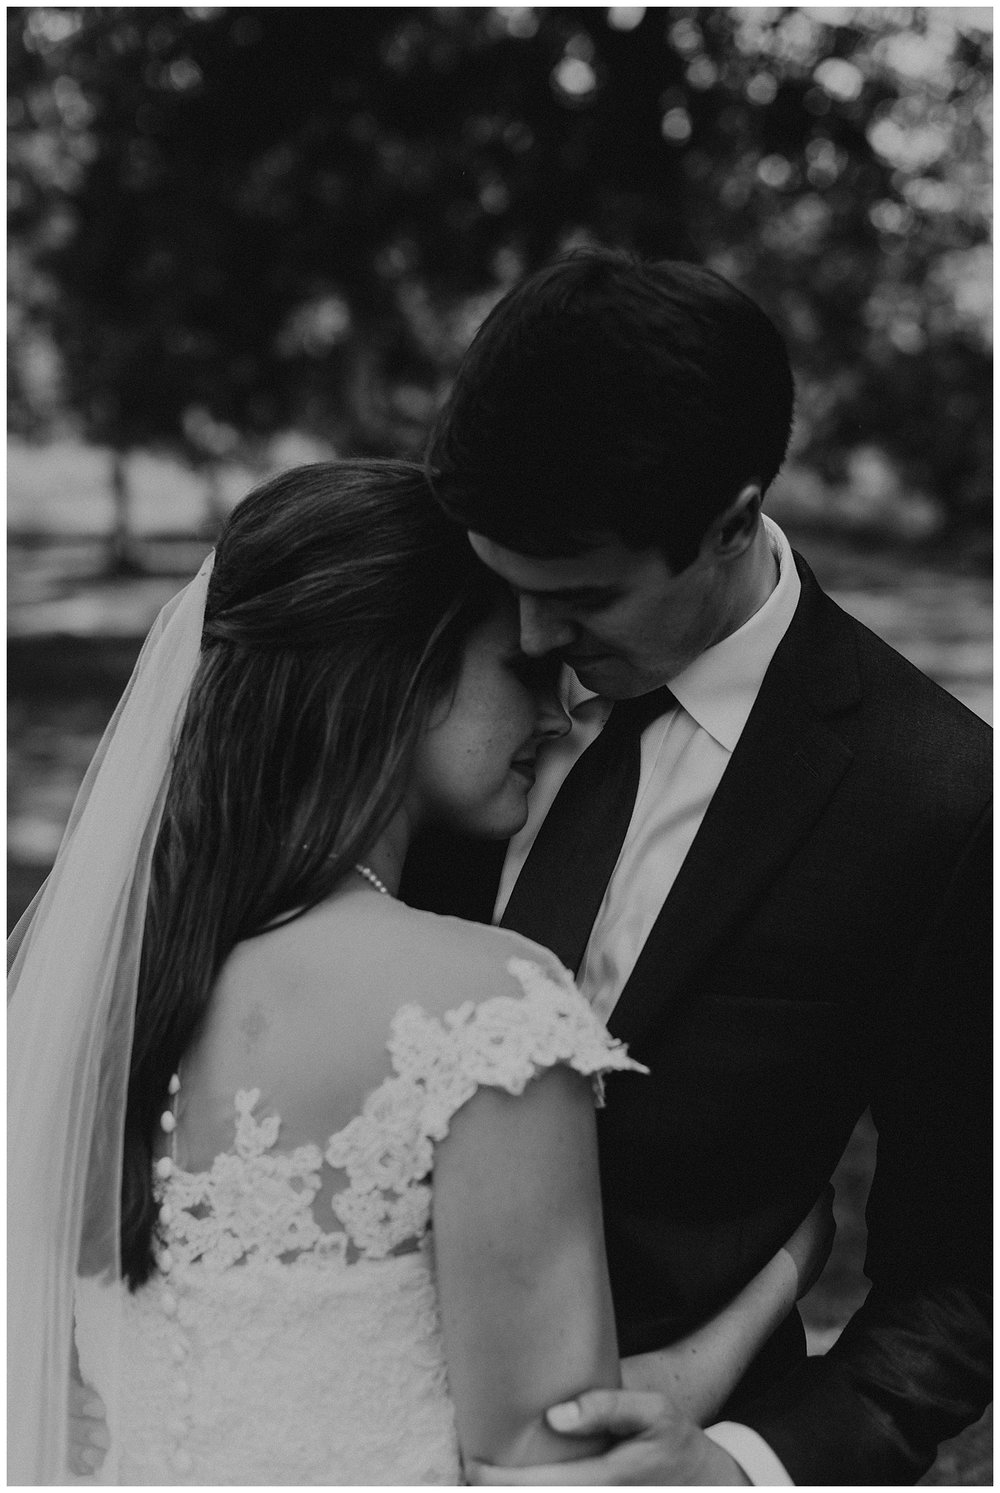 Madalynn Young Photography | Sarah Catherine + Will | Bridge Street Gallery and Loft | Atlanta Wedding Photographer_0186.jpg